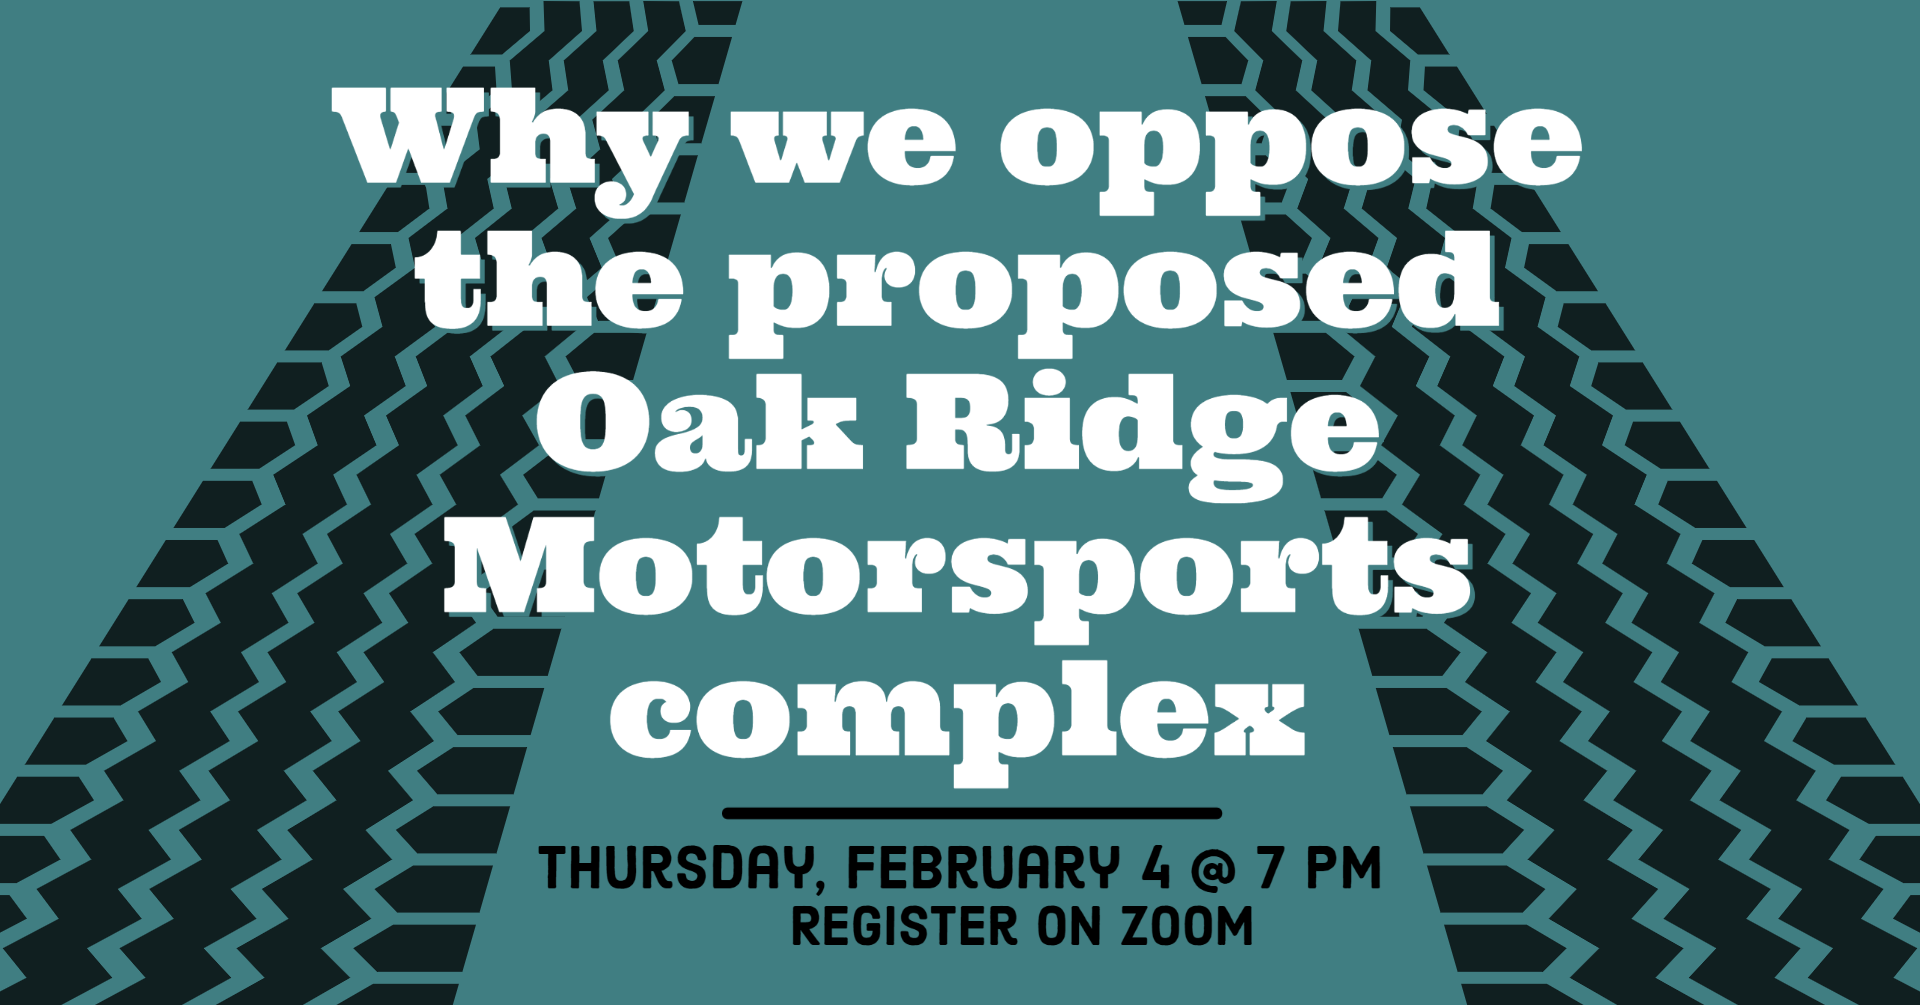 Why We Oppose the Proposed Oak Ridge Motorsports Complex @ Online